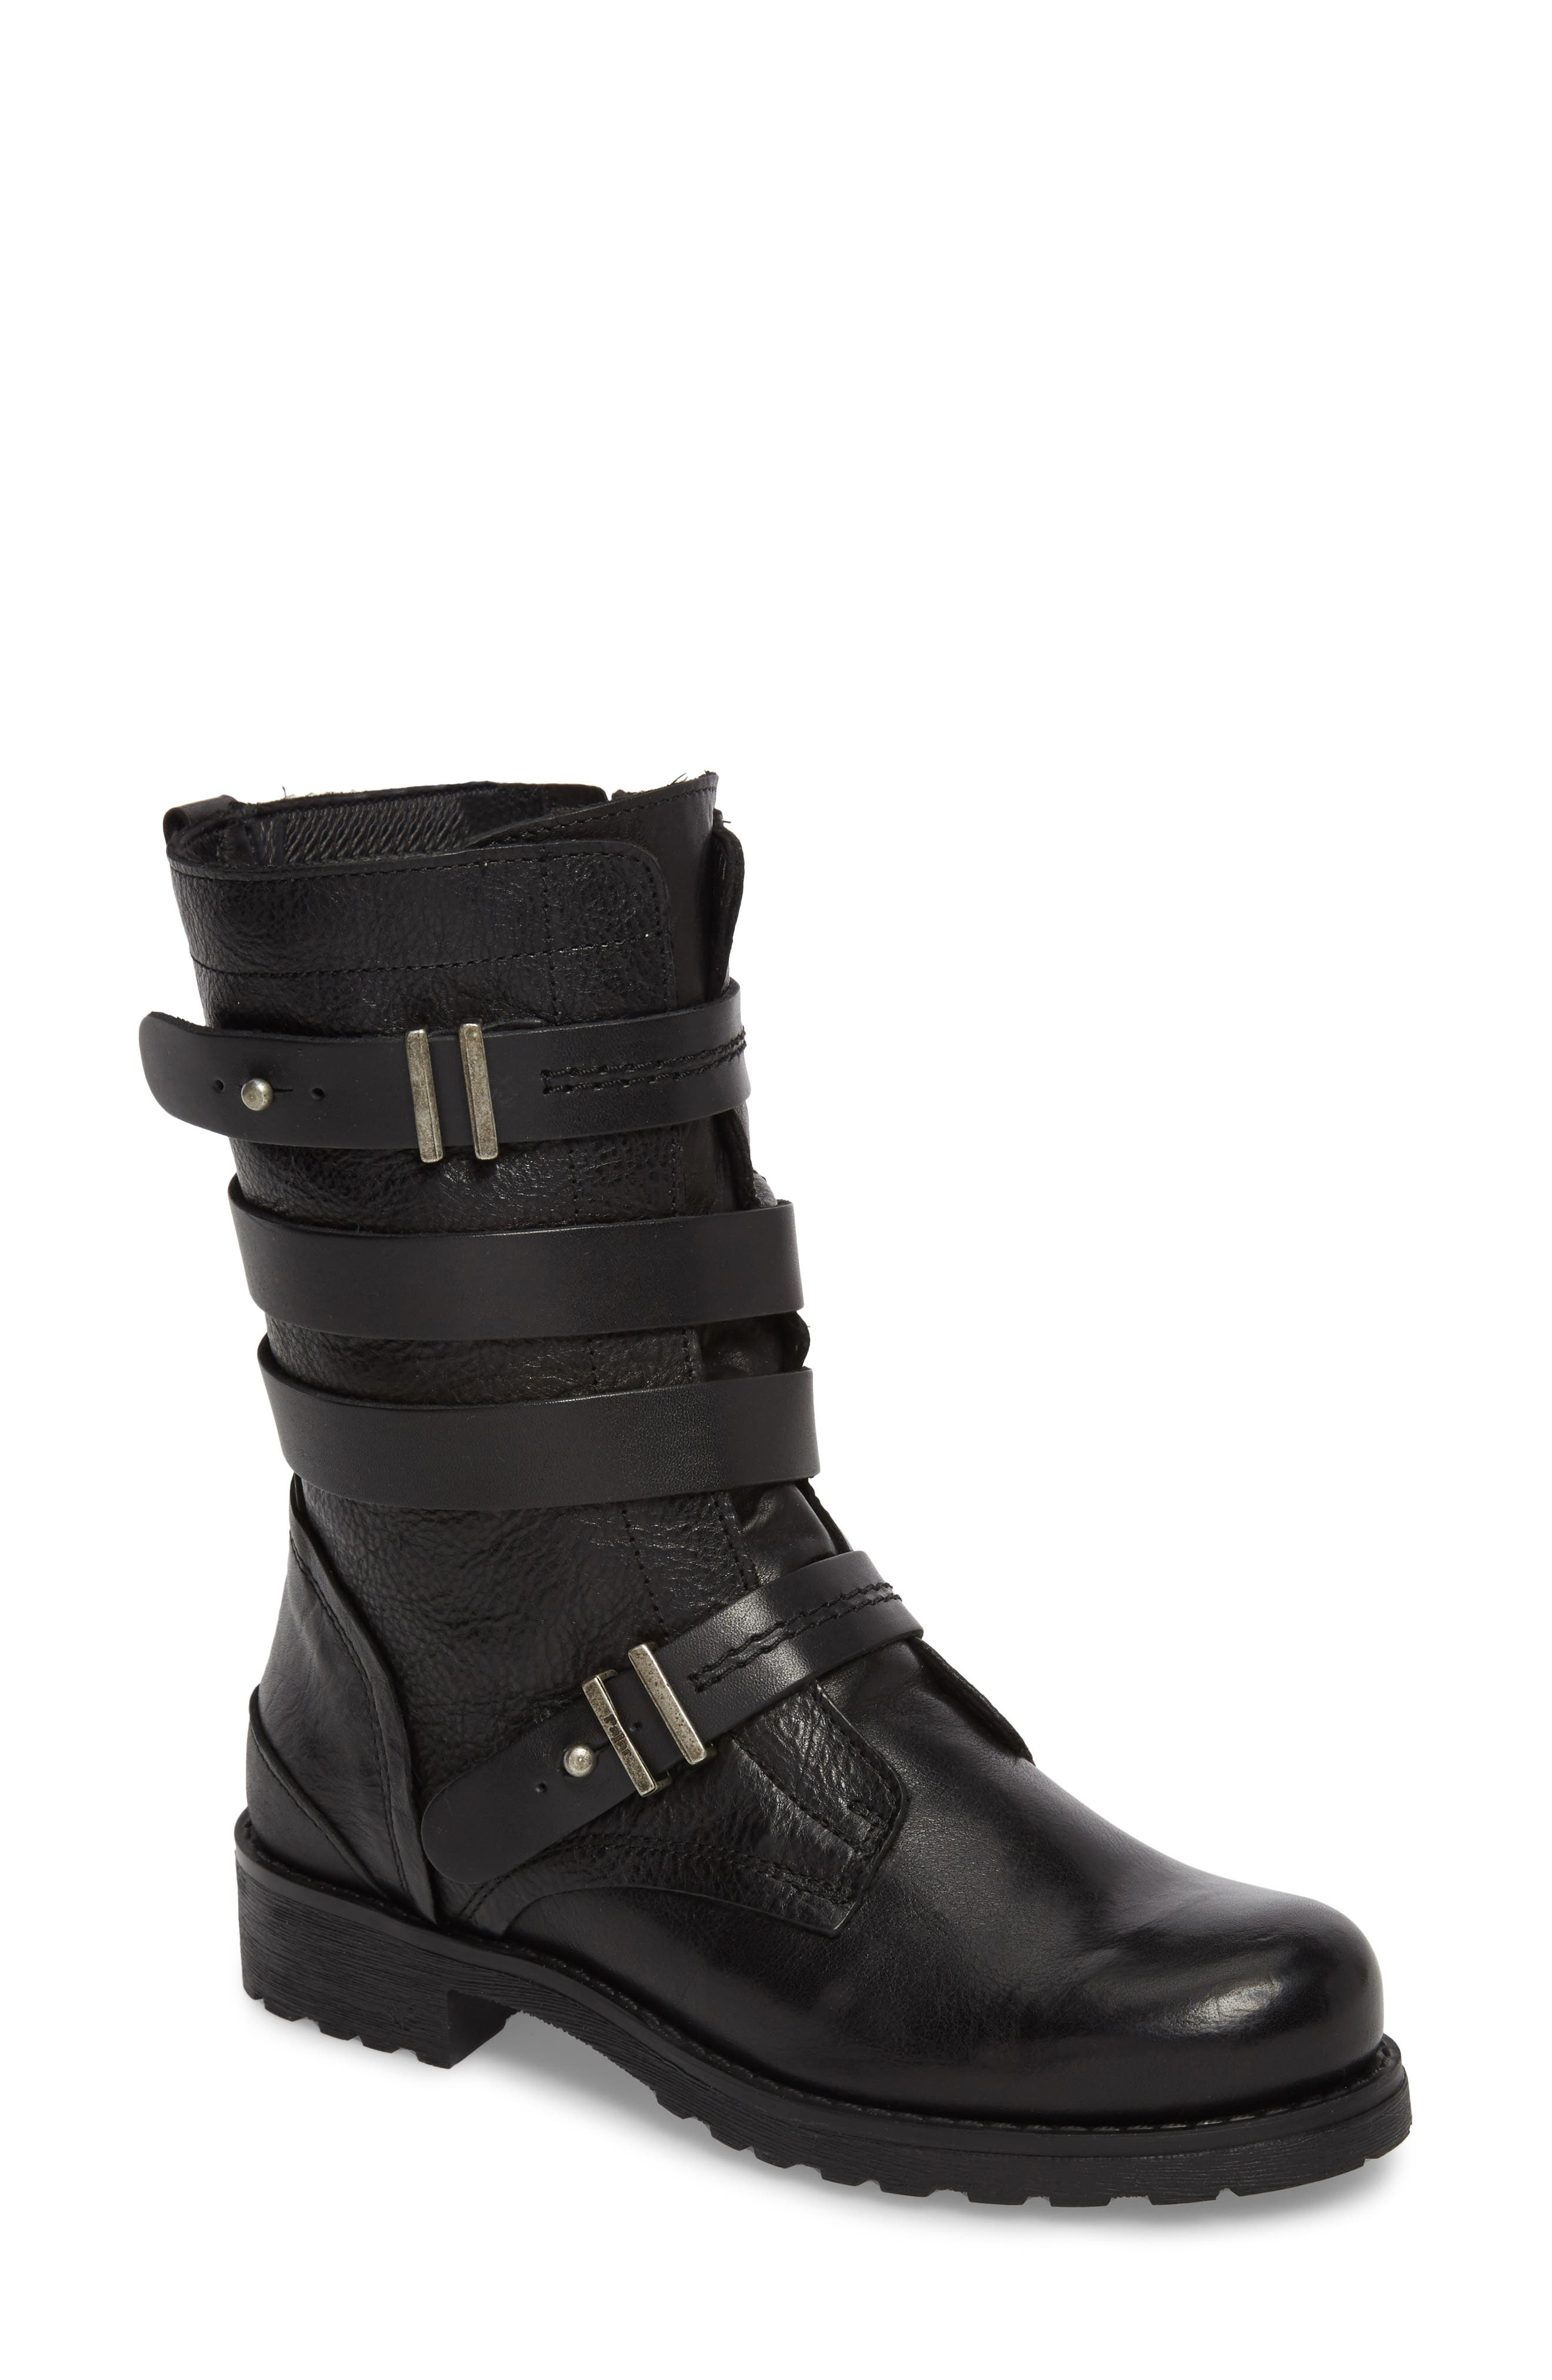 Alternate Image 1 Selected - Pajar Latias Waterproof Moto Boot (Women)